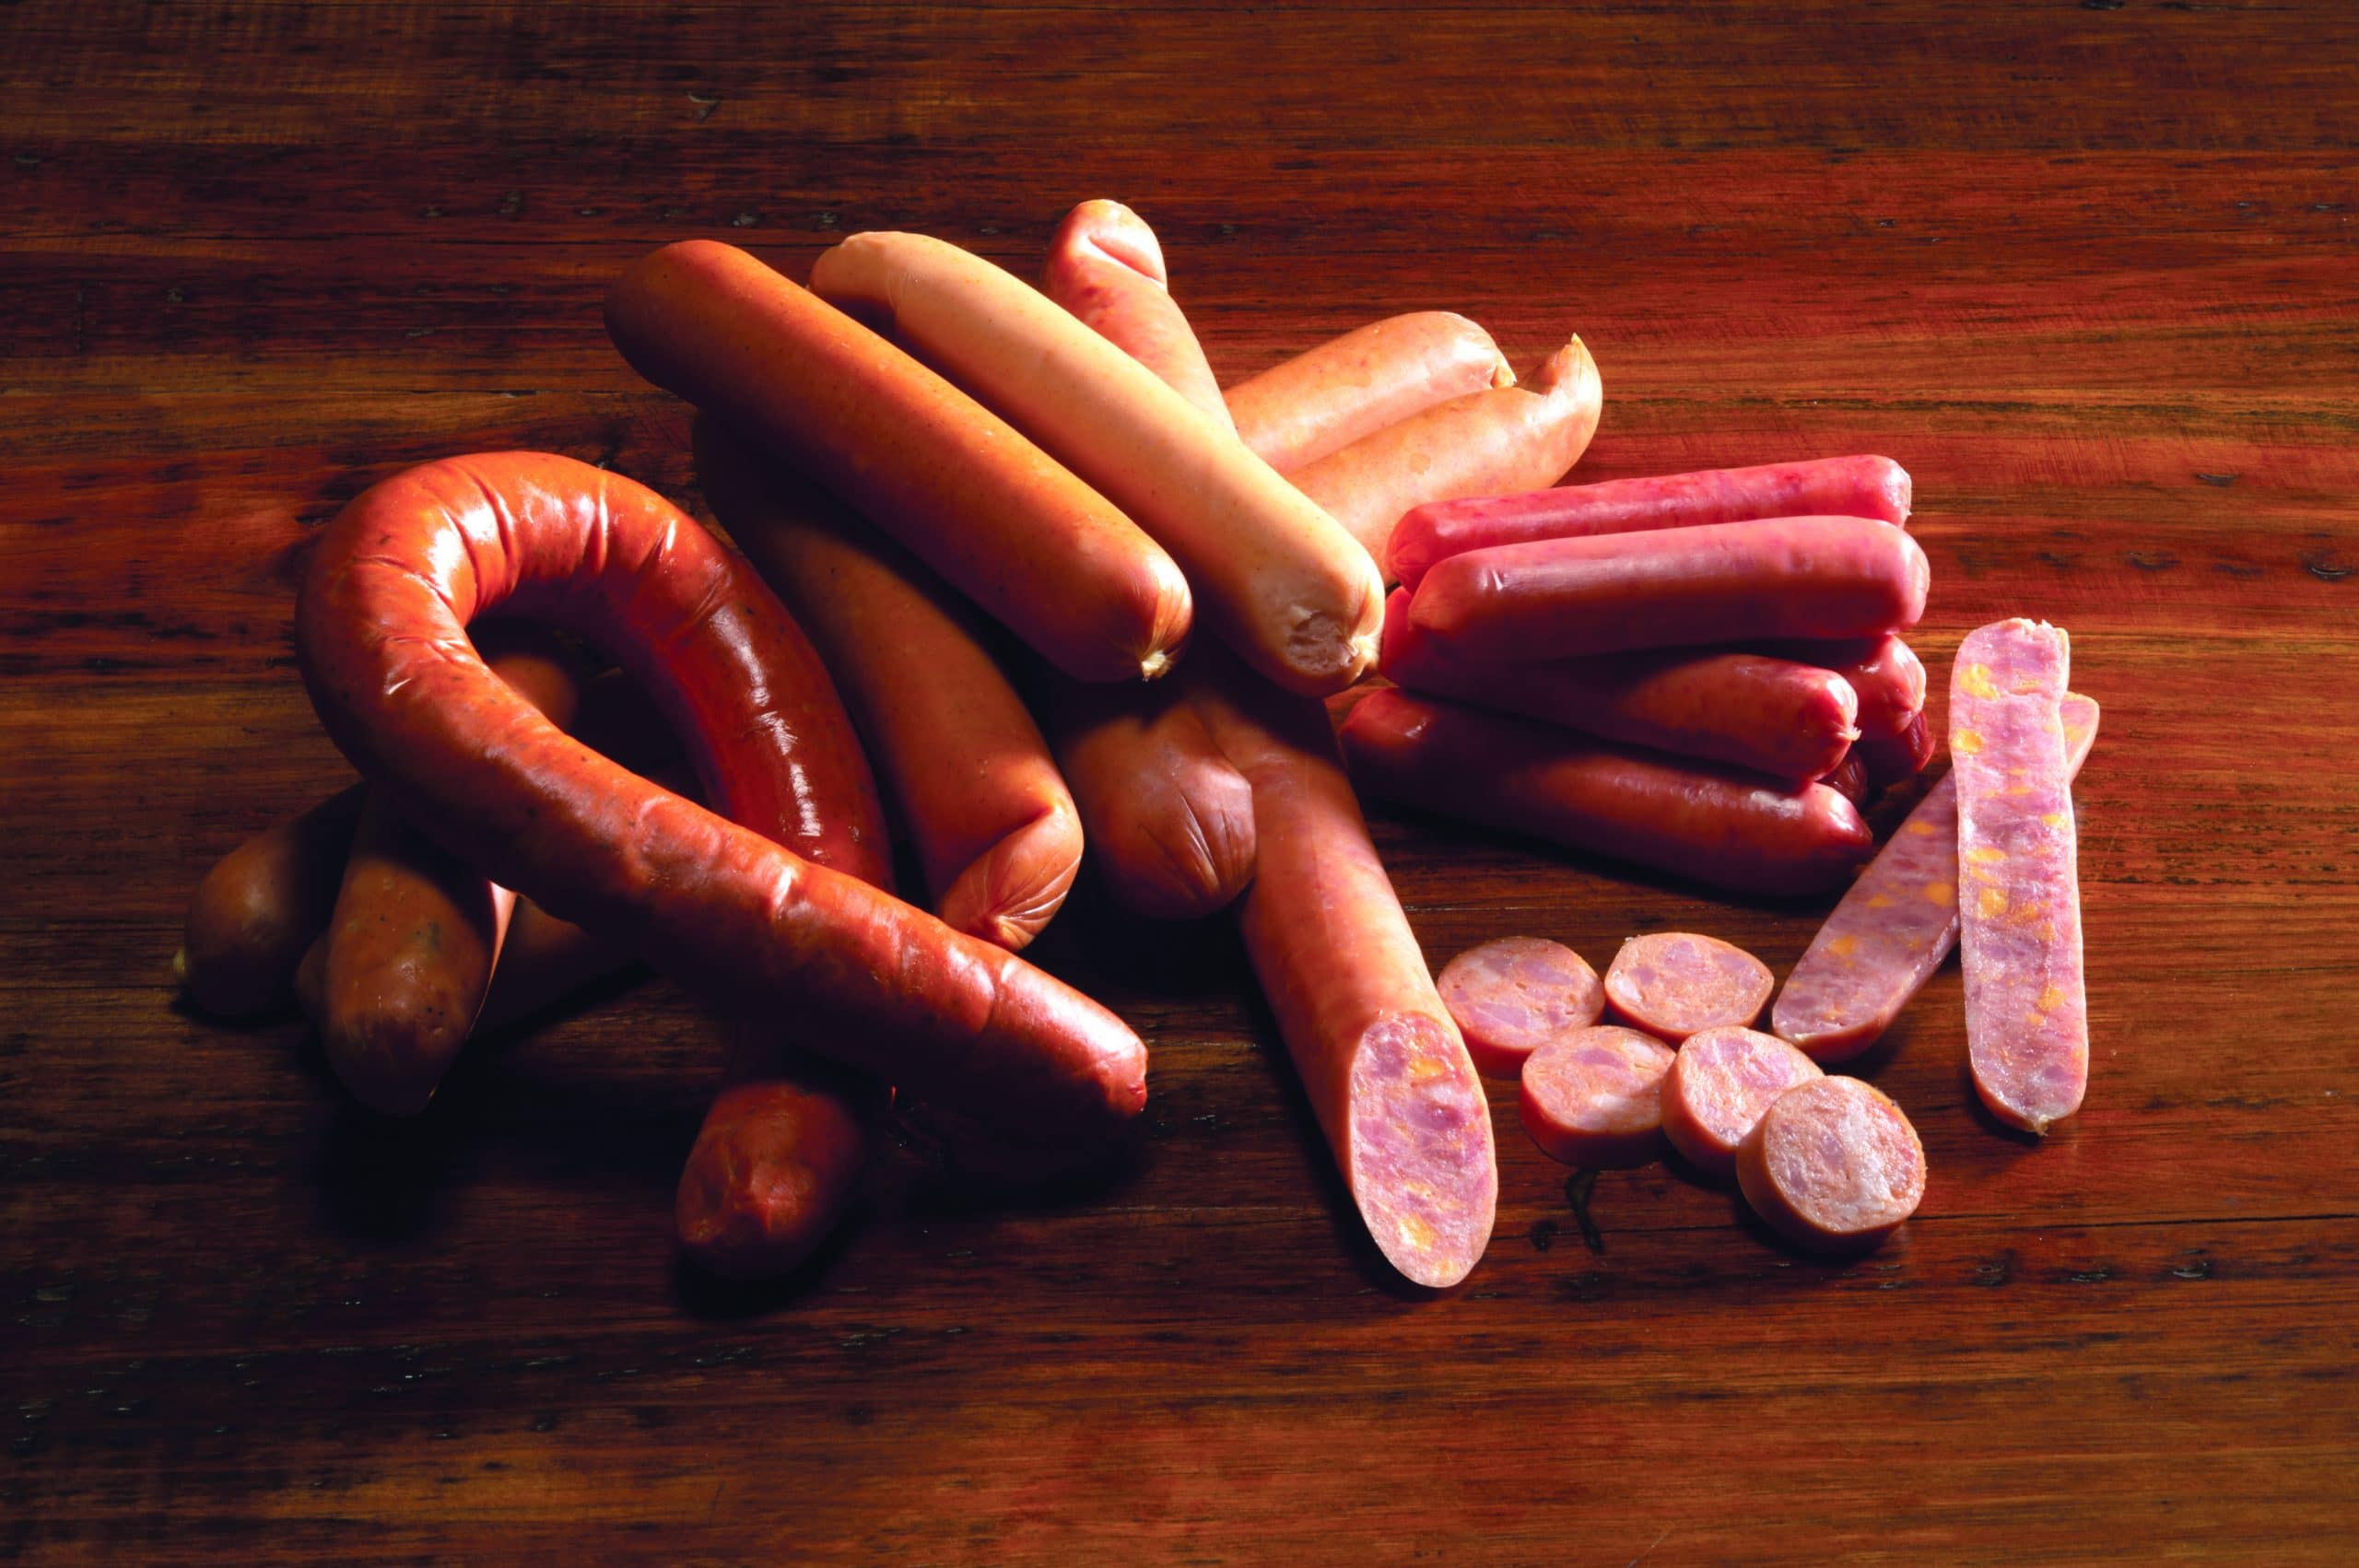 Wholesale footlong sausages